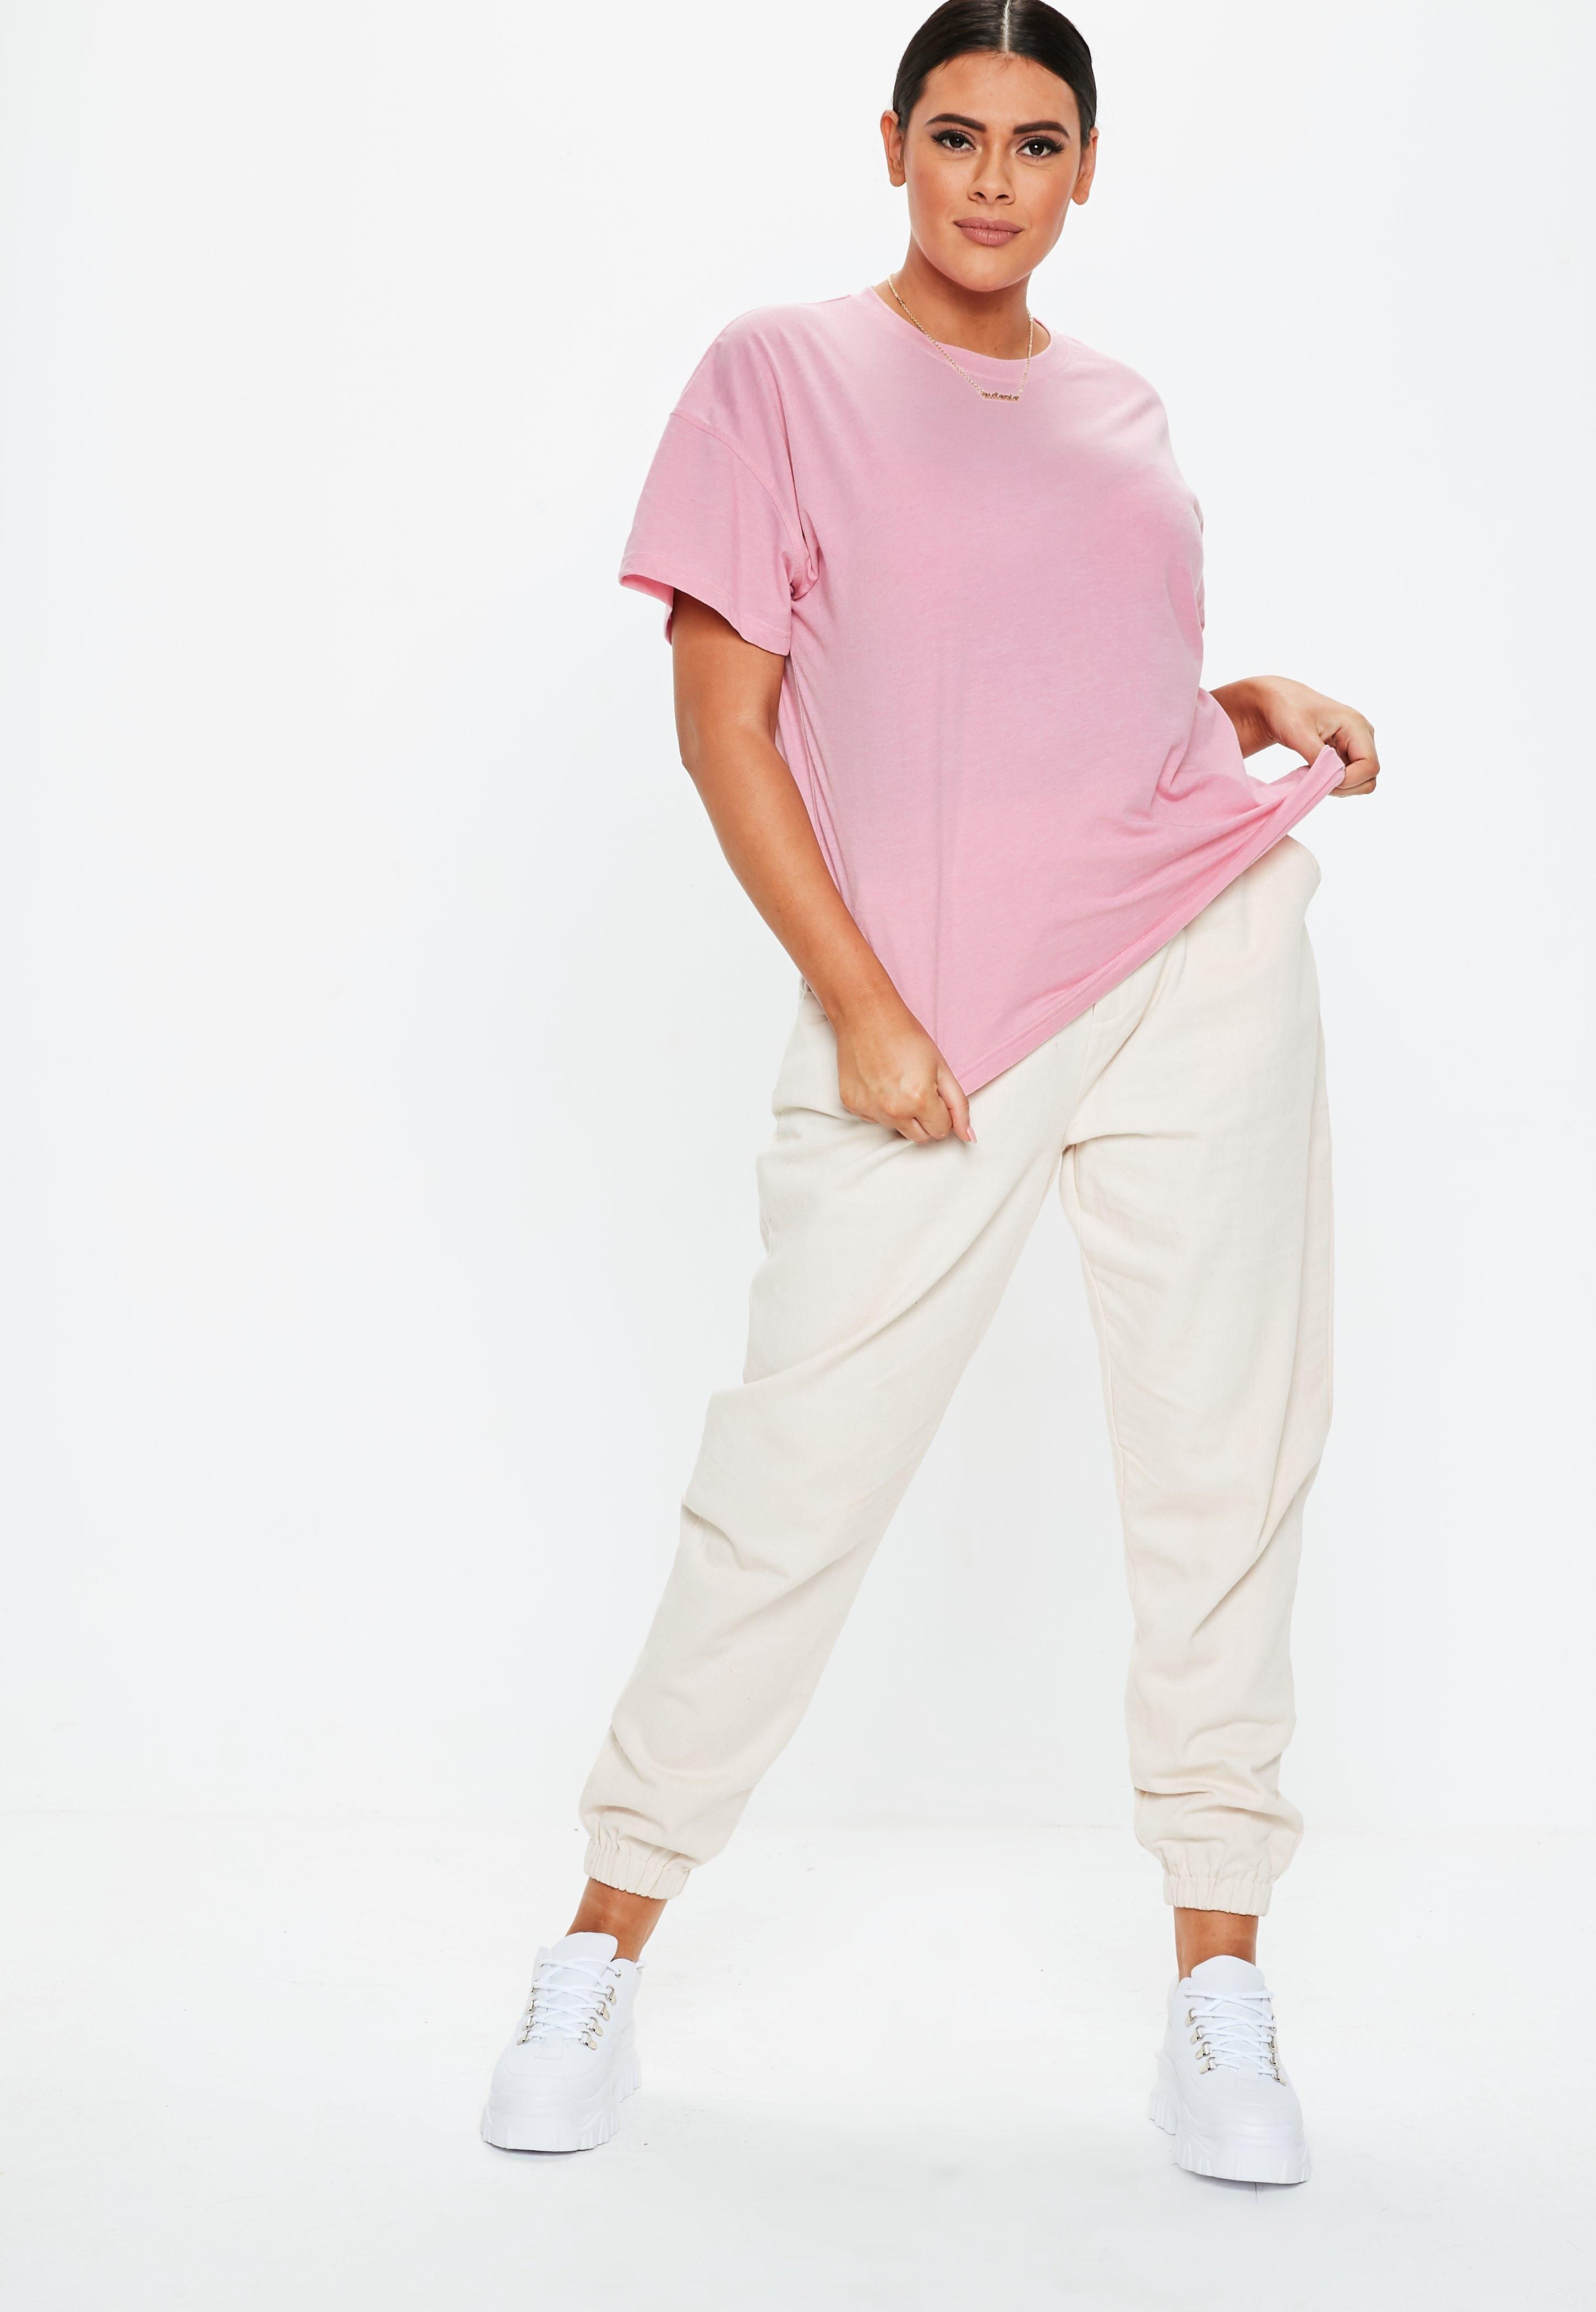 903b98fd861 Missguided - Plus Size Pink Oversized Graphic T Shirt - Lyst. View  fullscreen